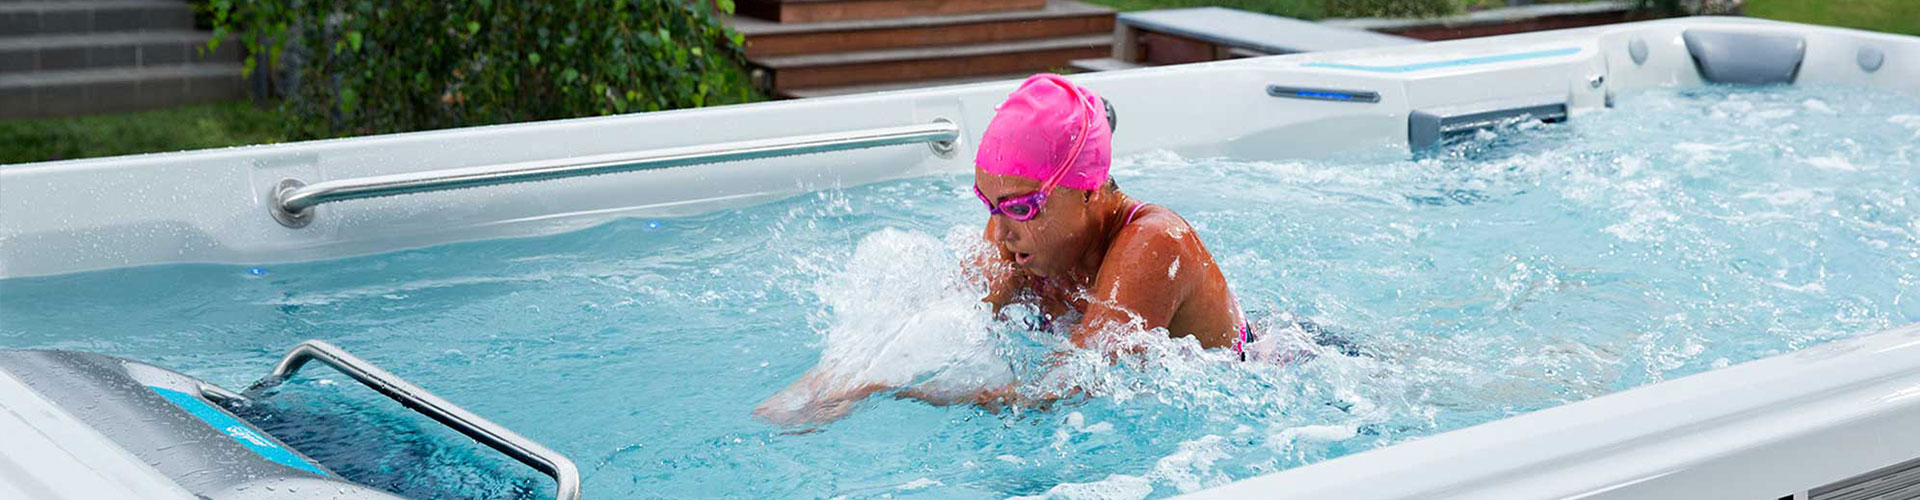 3 Smart Reasons to Choose a Swim Spa over a Traditional Pool, Swim Spas for Sale Clive